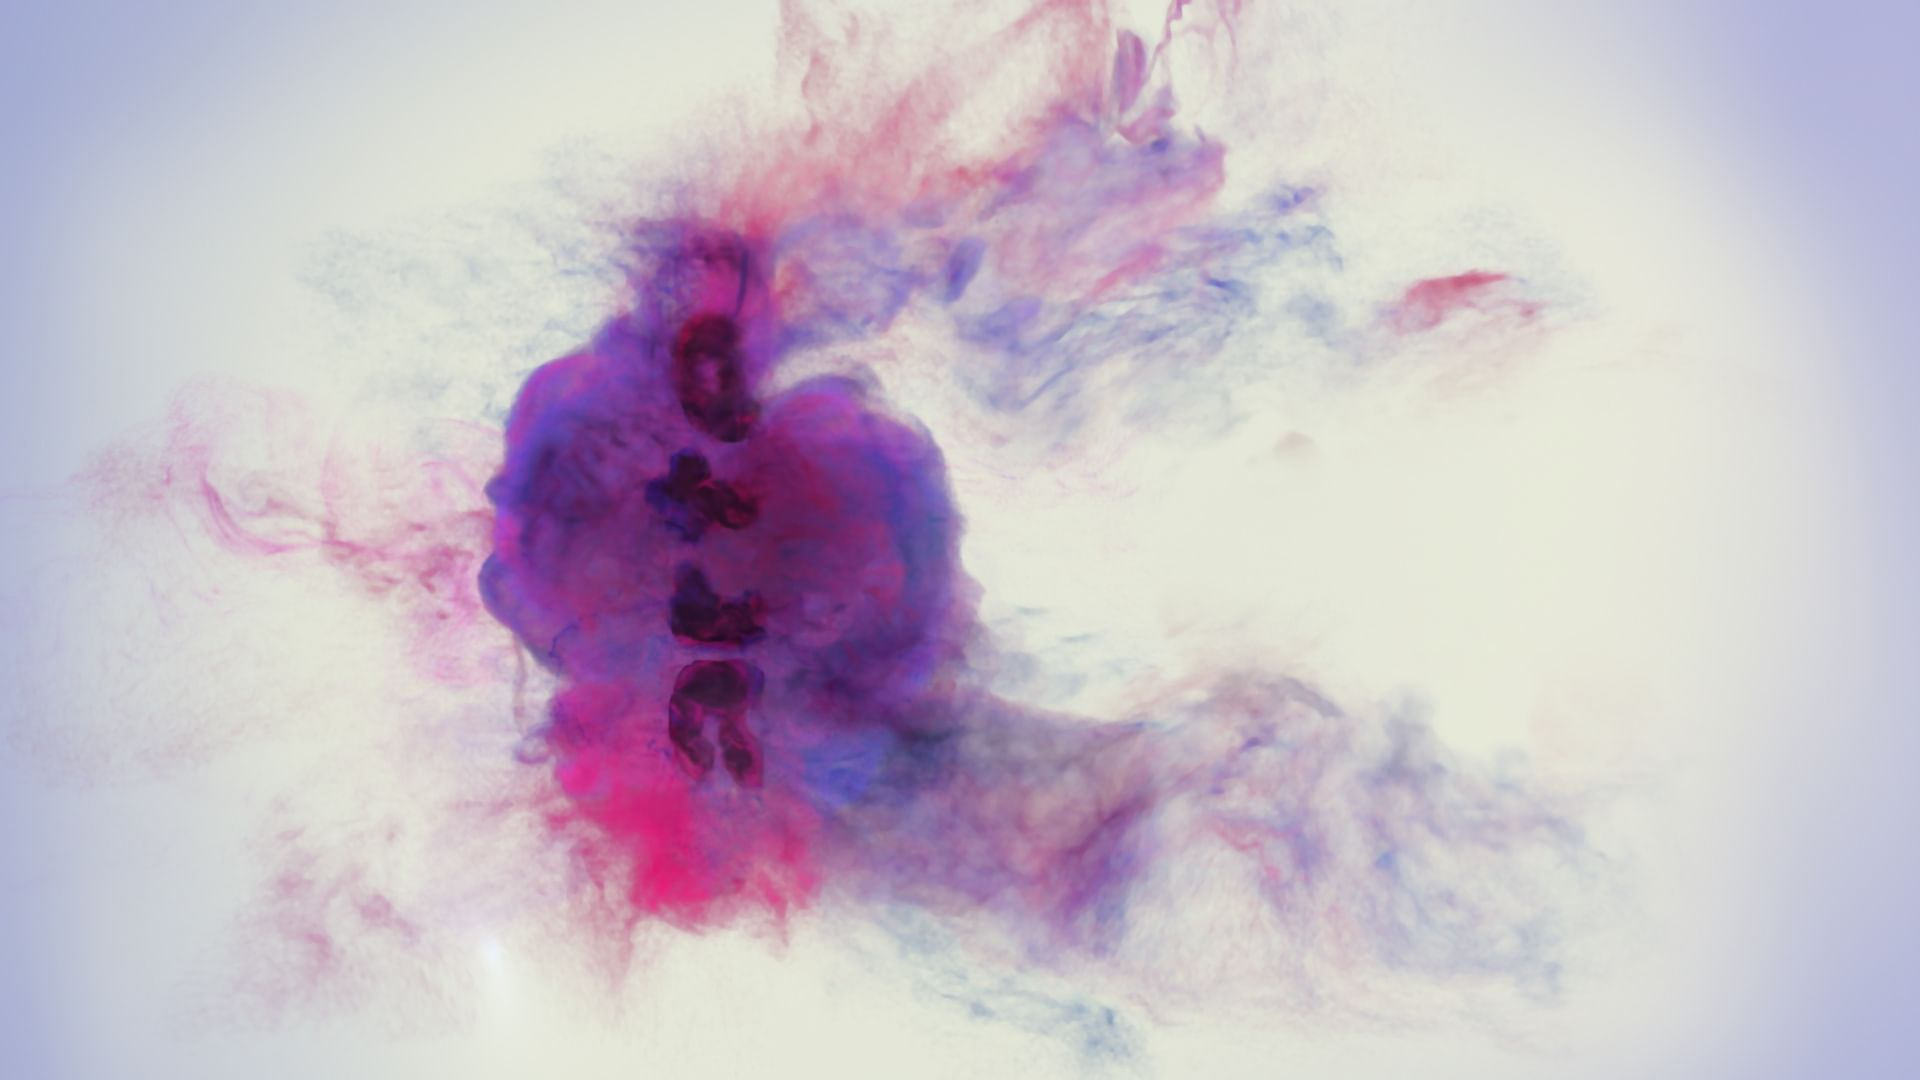 Kings of trains 1971 1984 the rise of graffiti writing 2 from new york to europe 1 6 arte in english